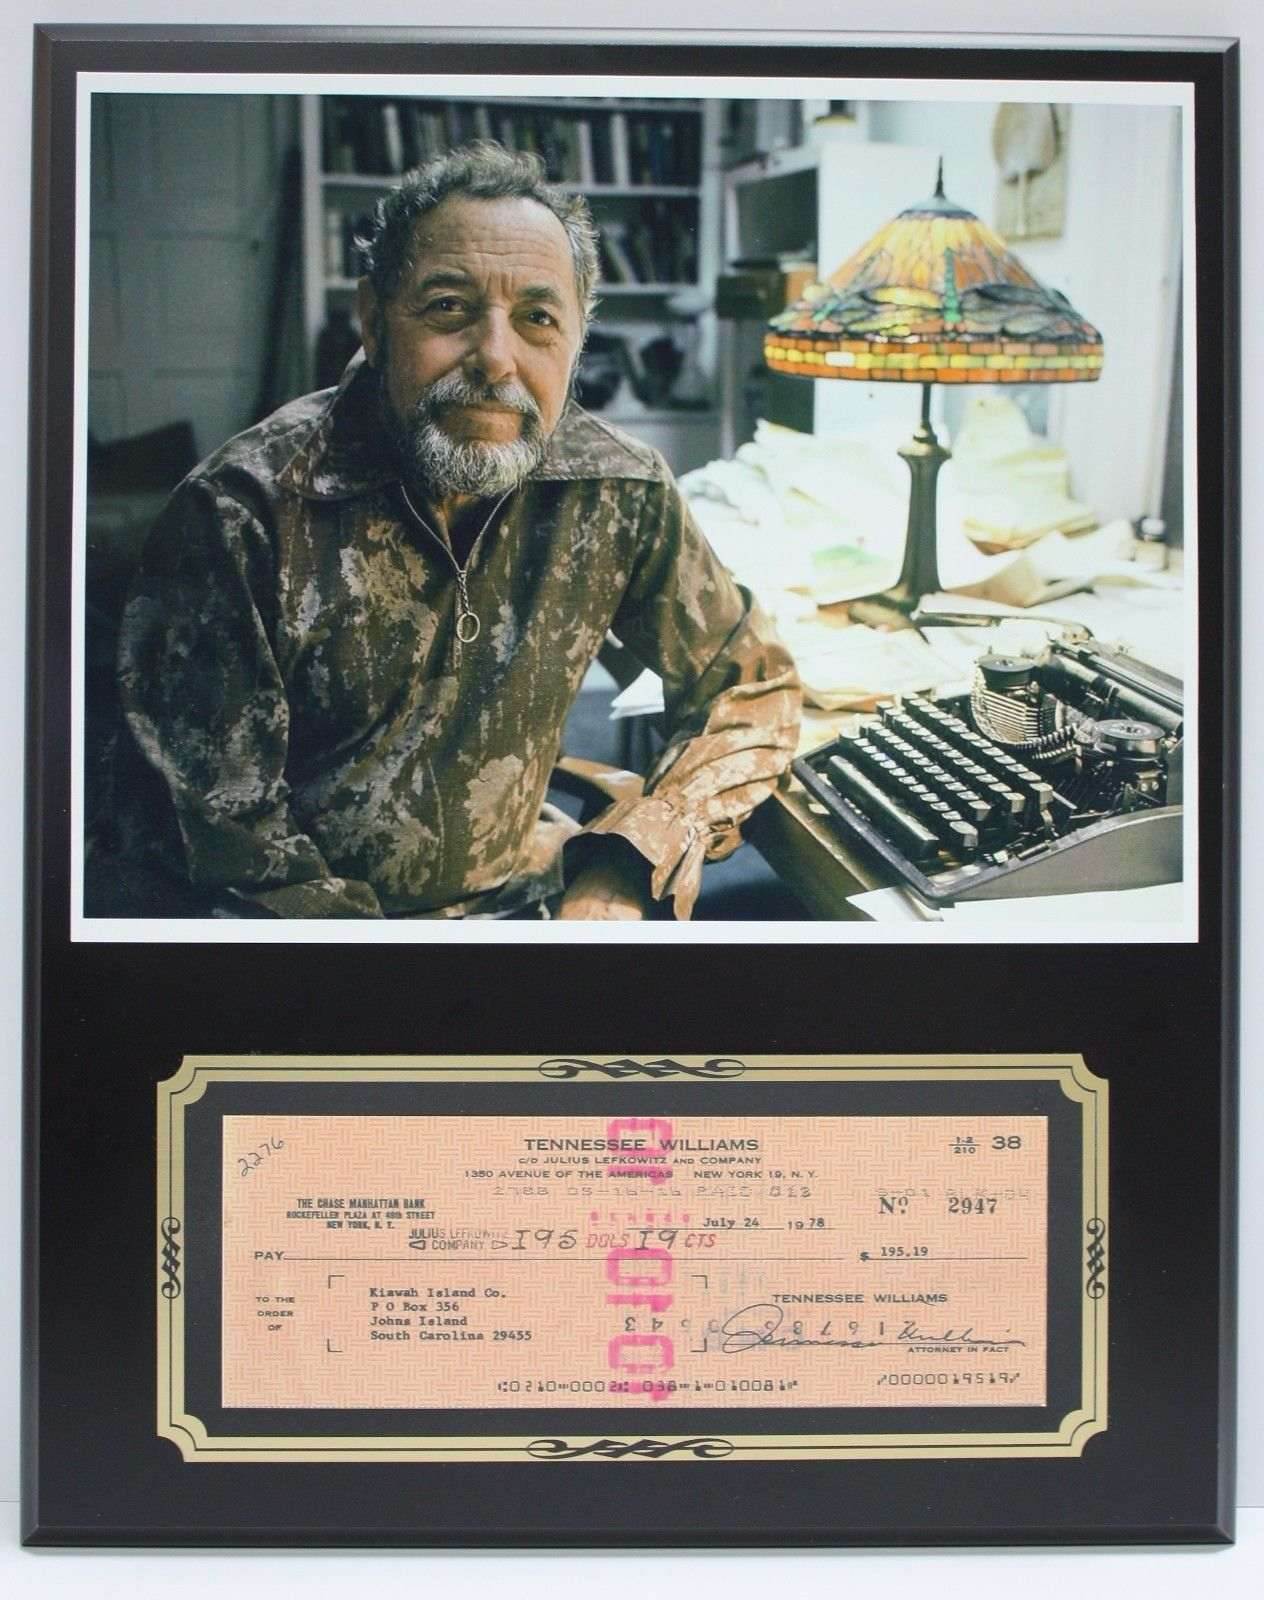 Tennessee Williams Author Reproduction Signed Limited Edition Check  Display